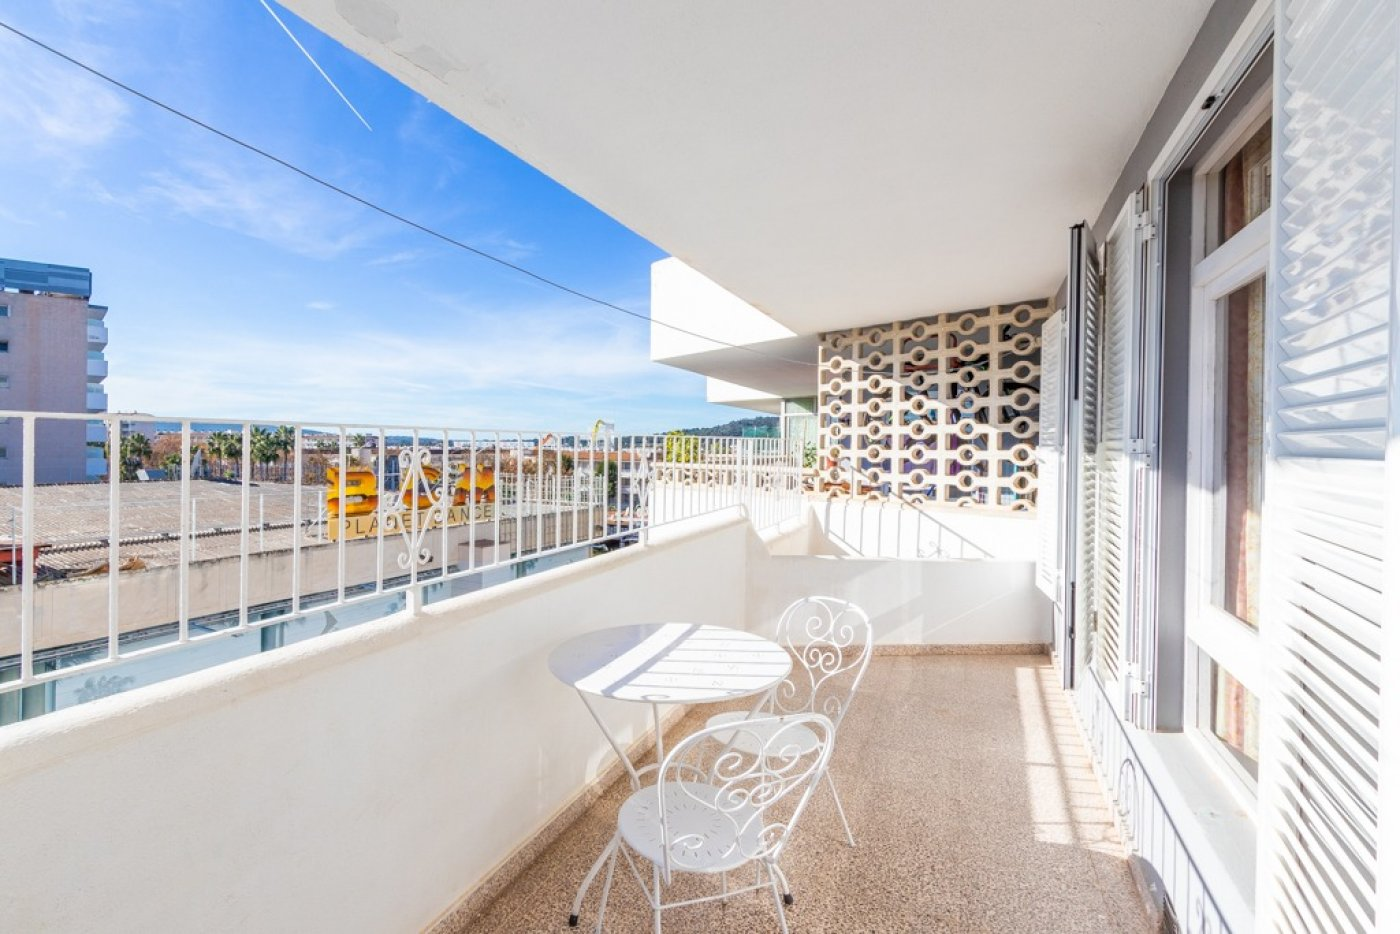 Flat for rent in Magaluf, Calvia